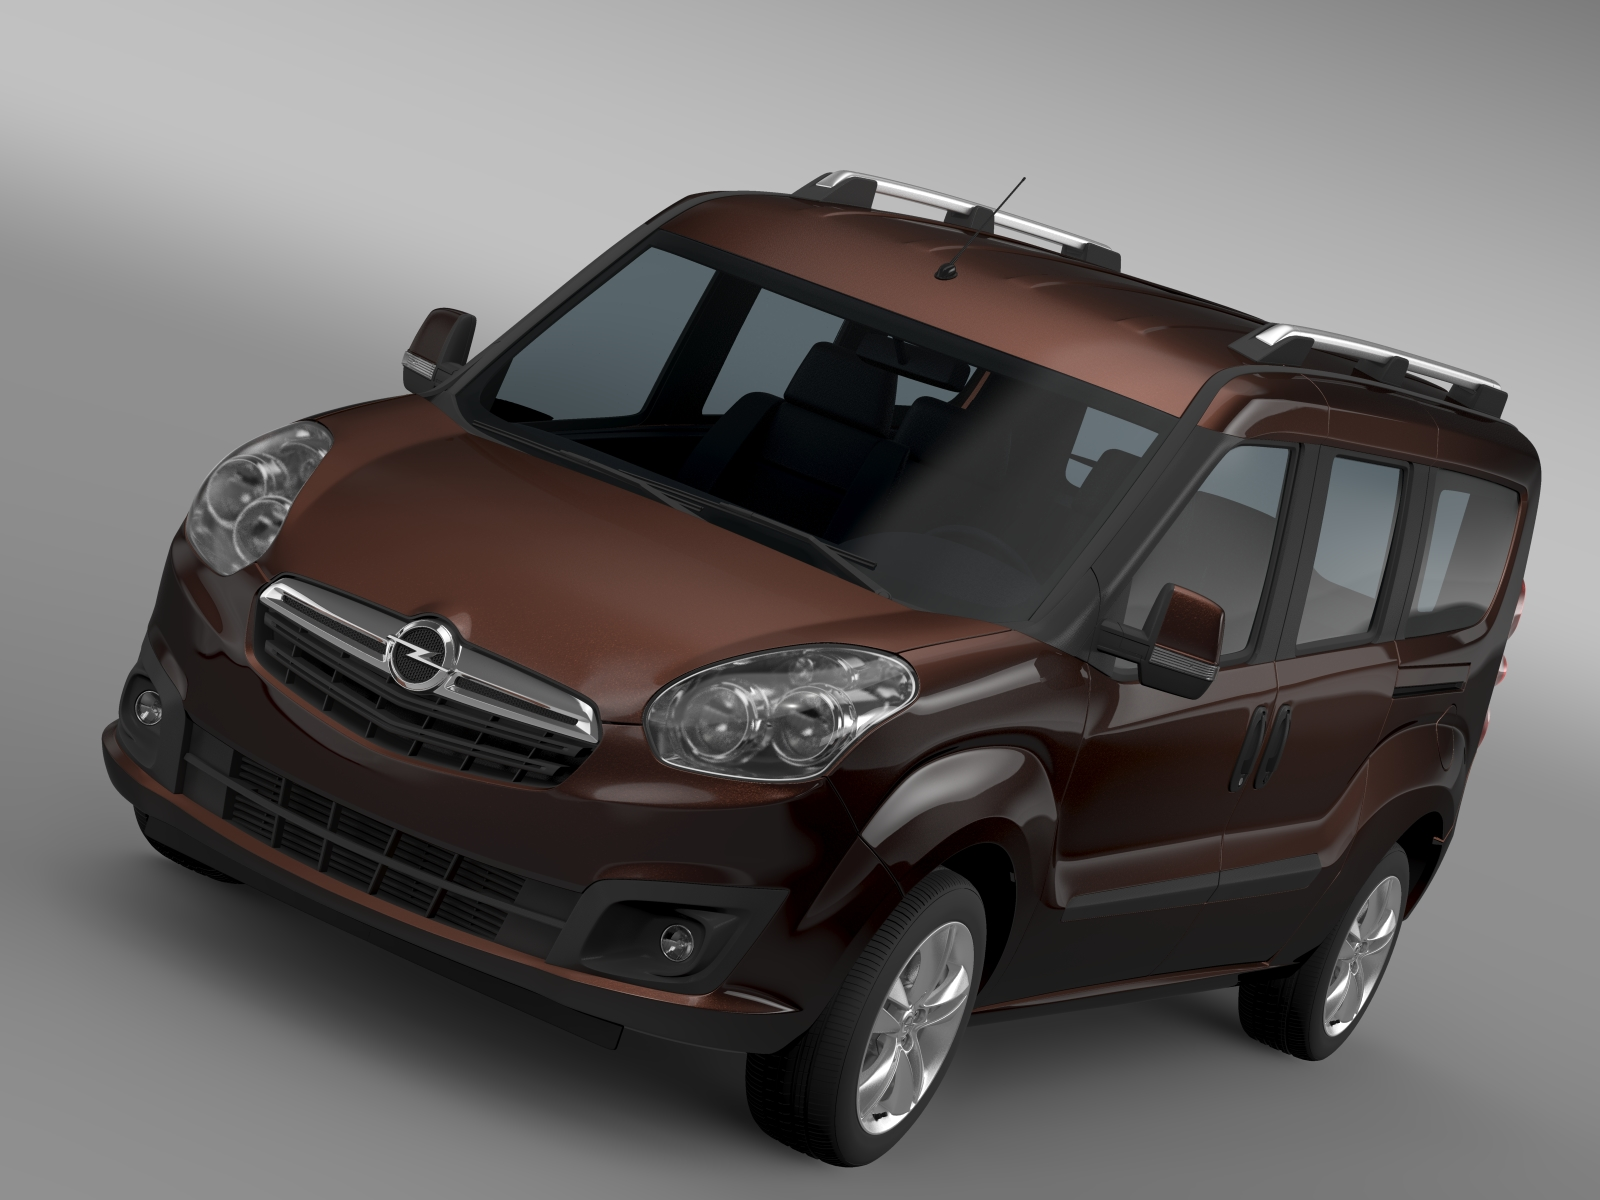 opel combo tour lwb d 2015 3d model buy opel combo tour lwb d 2015 3d model flatpyramid. Black Bedroom Furniture Sets. Home Design Ideas